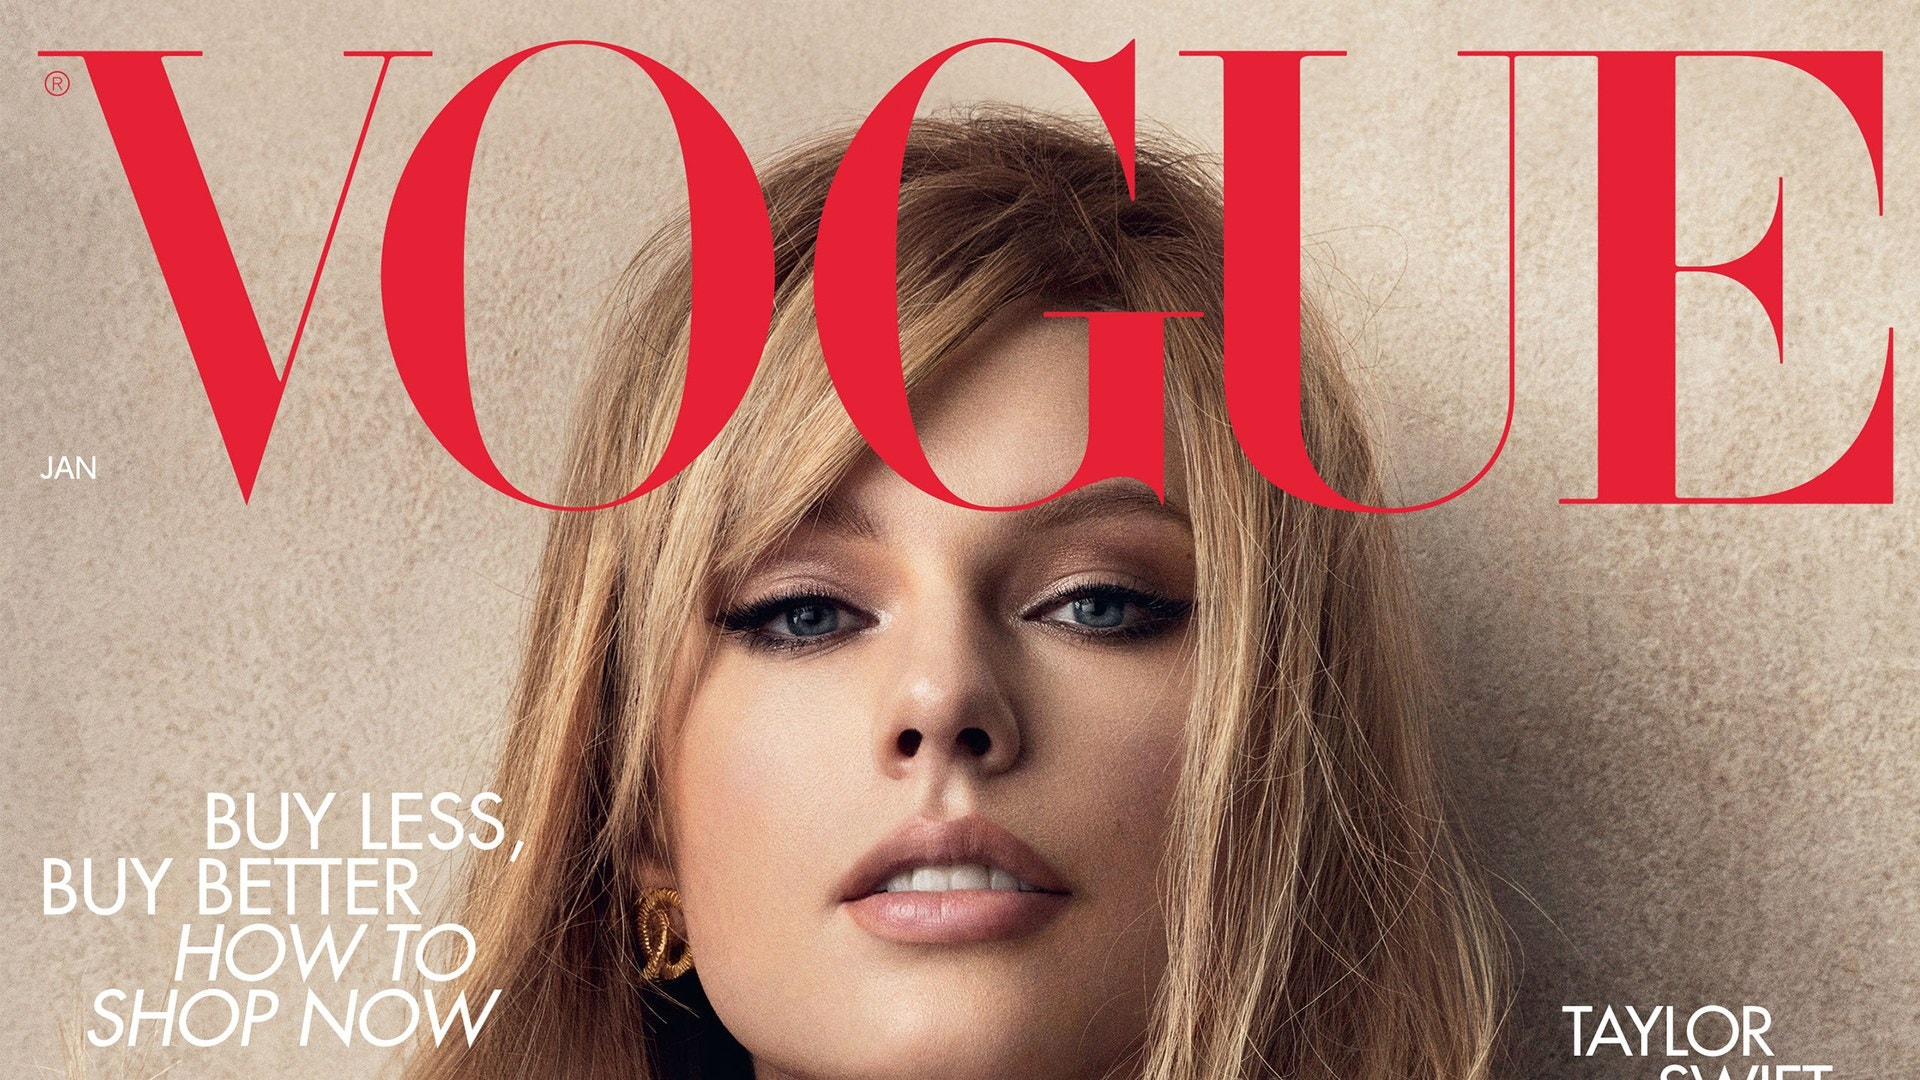 Taylor Swift Covers The January Issue Of British Vogue 1920x1080